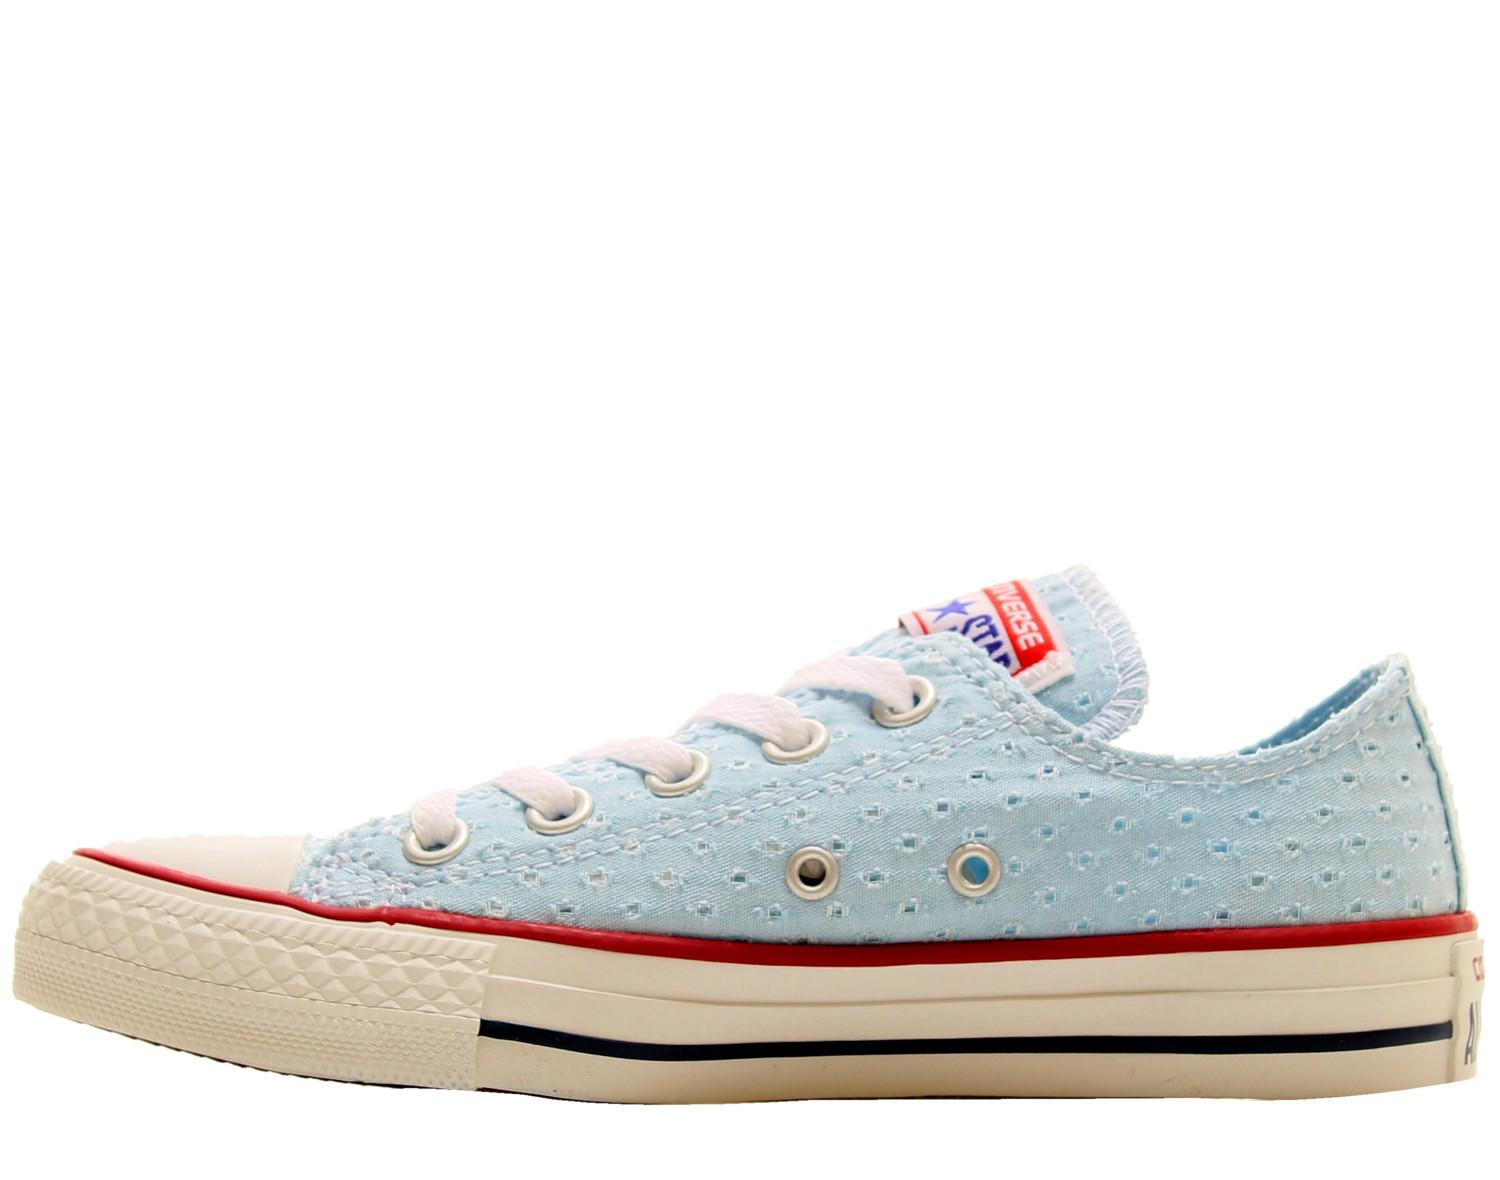 400e593c35f3 Gallery. Previously sold at  Jet.com · Women s Converse Chuck Taylor ...